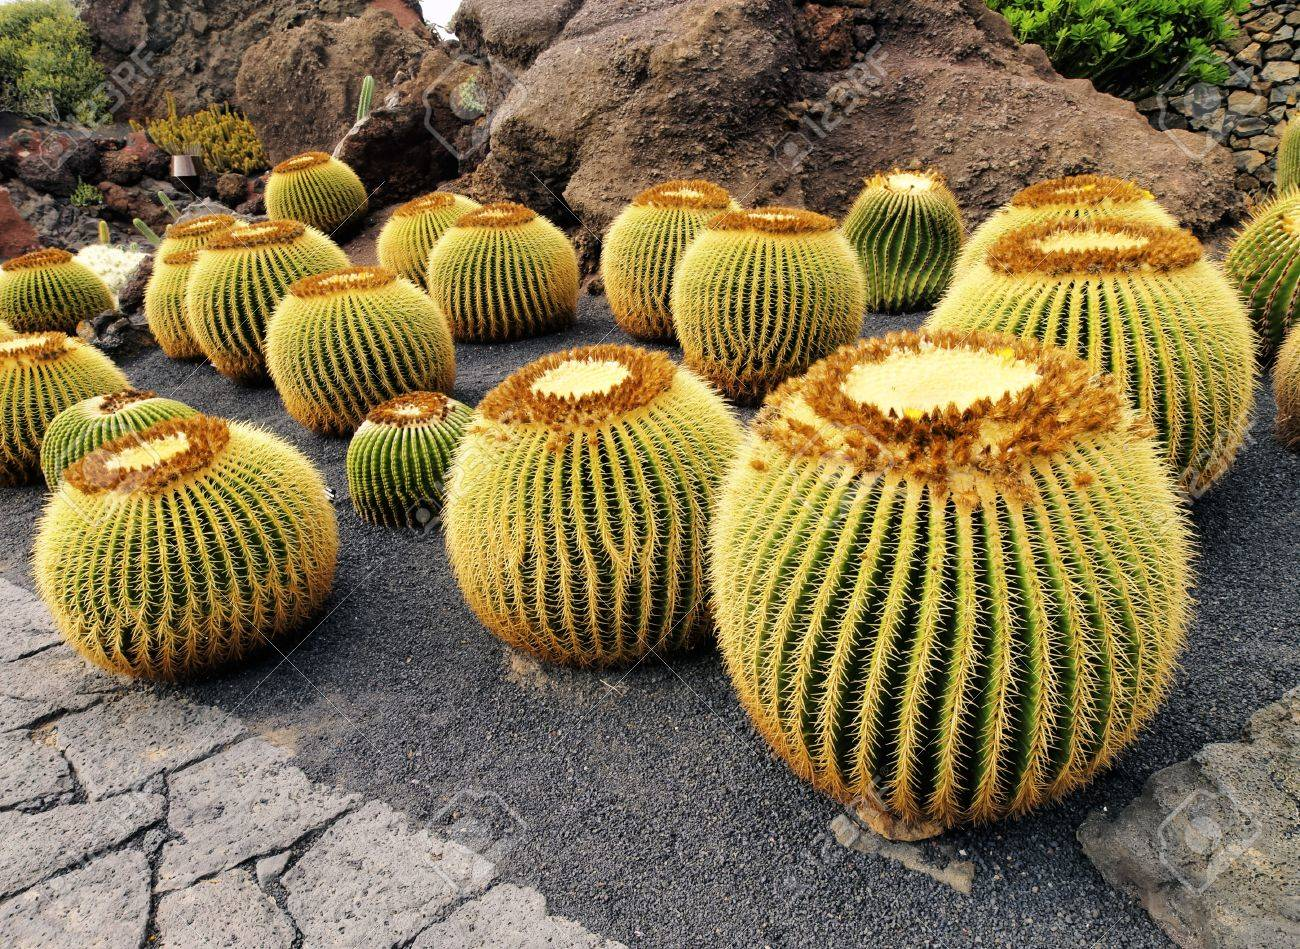 jardin de cactus lanzarote canary islands spain stock photo